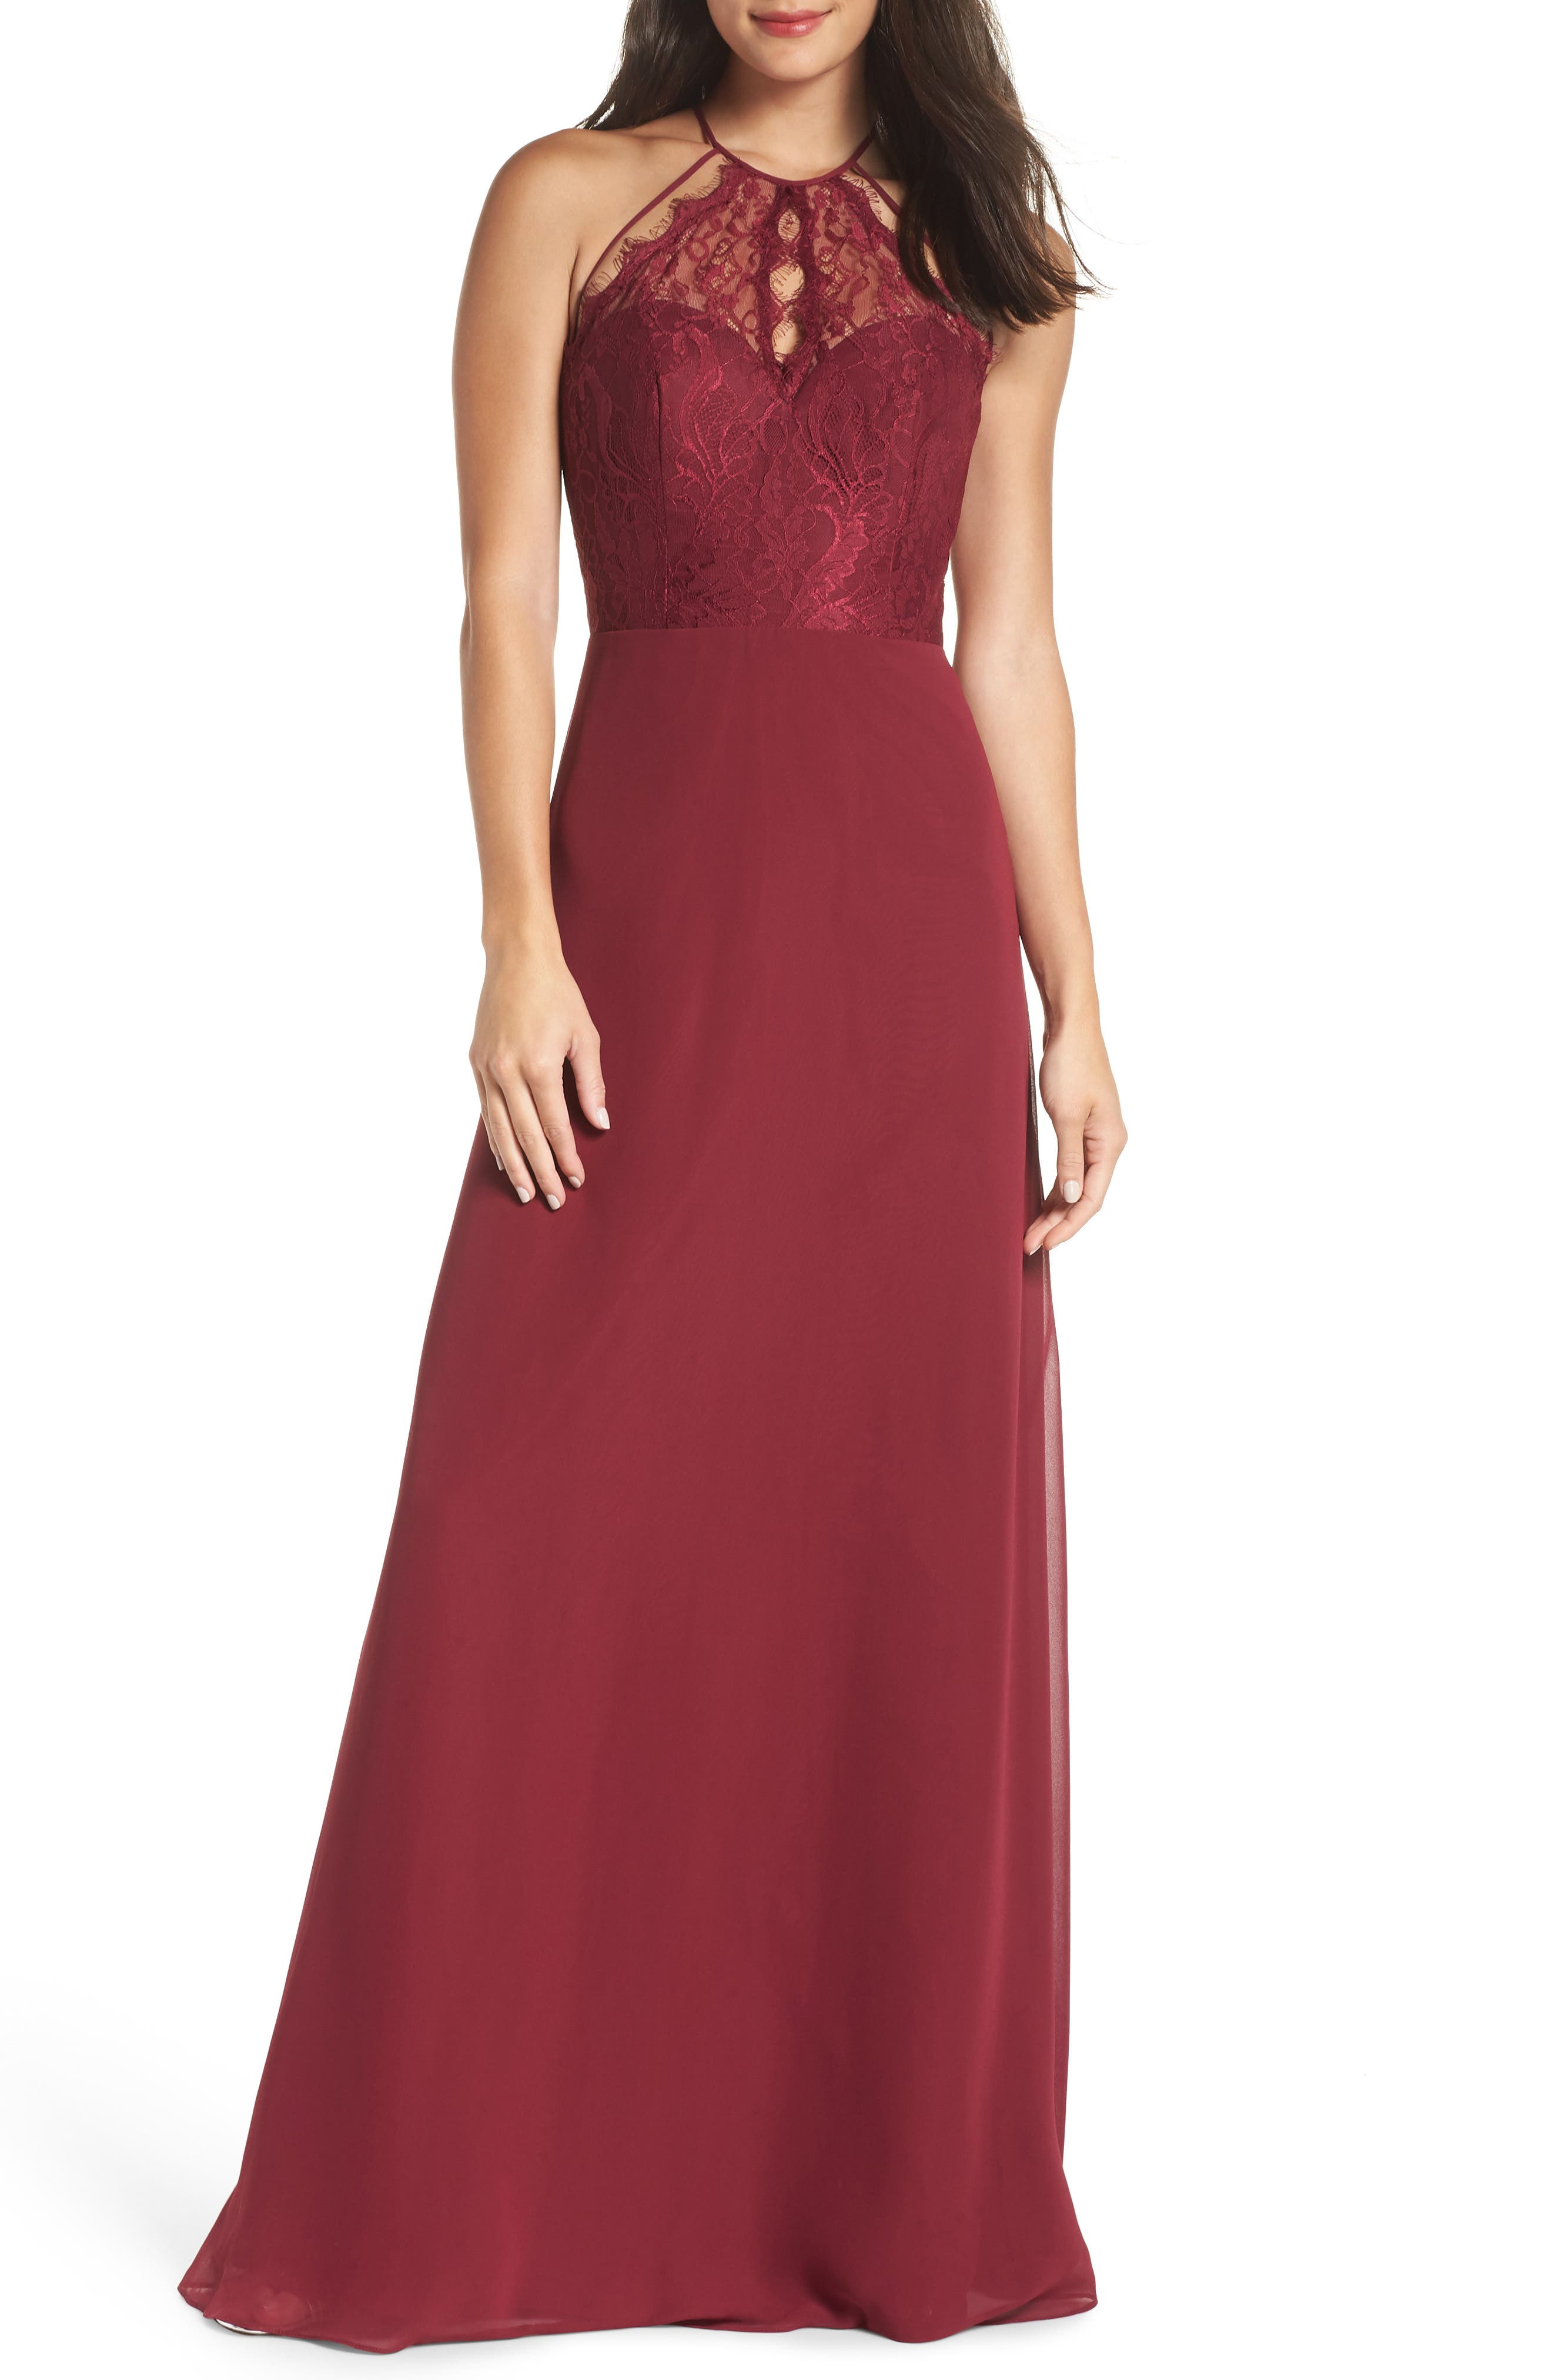 HAYLEY PAIGE OCCASIONS, Lace & Chiffon Halter Gown, Main thumbnail 1, color, BURGUNDY